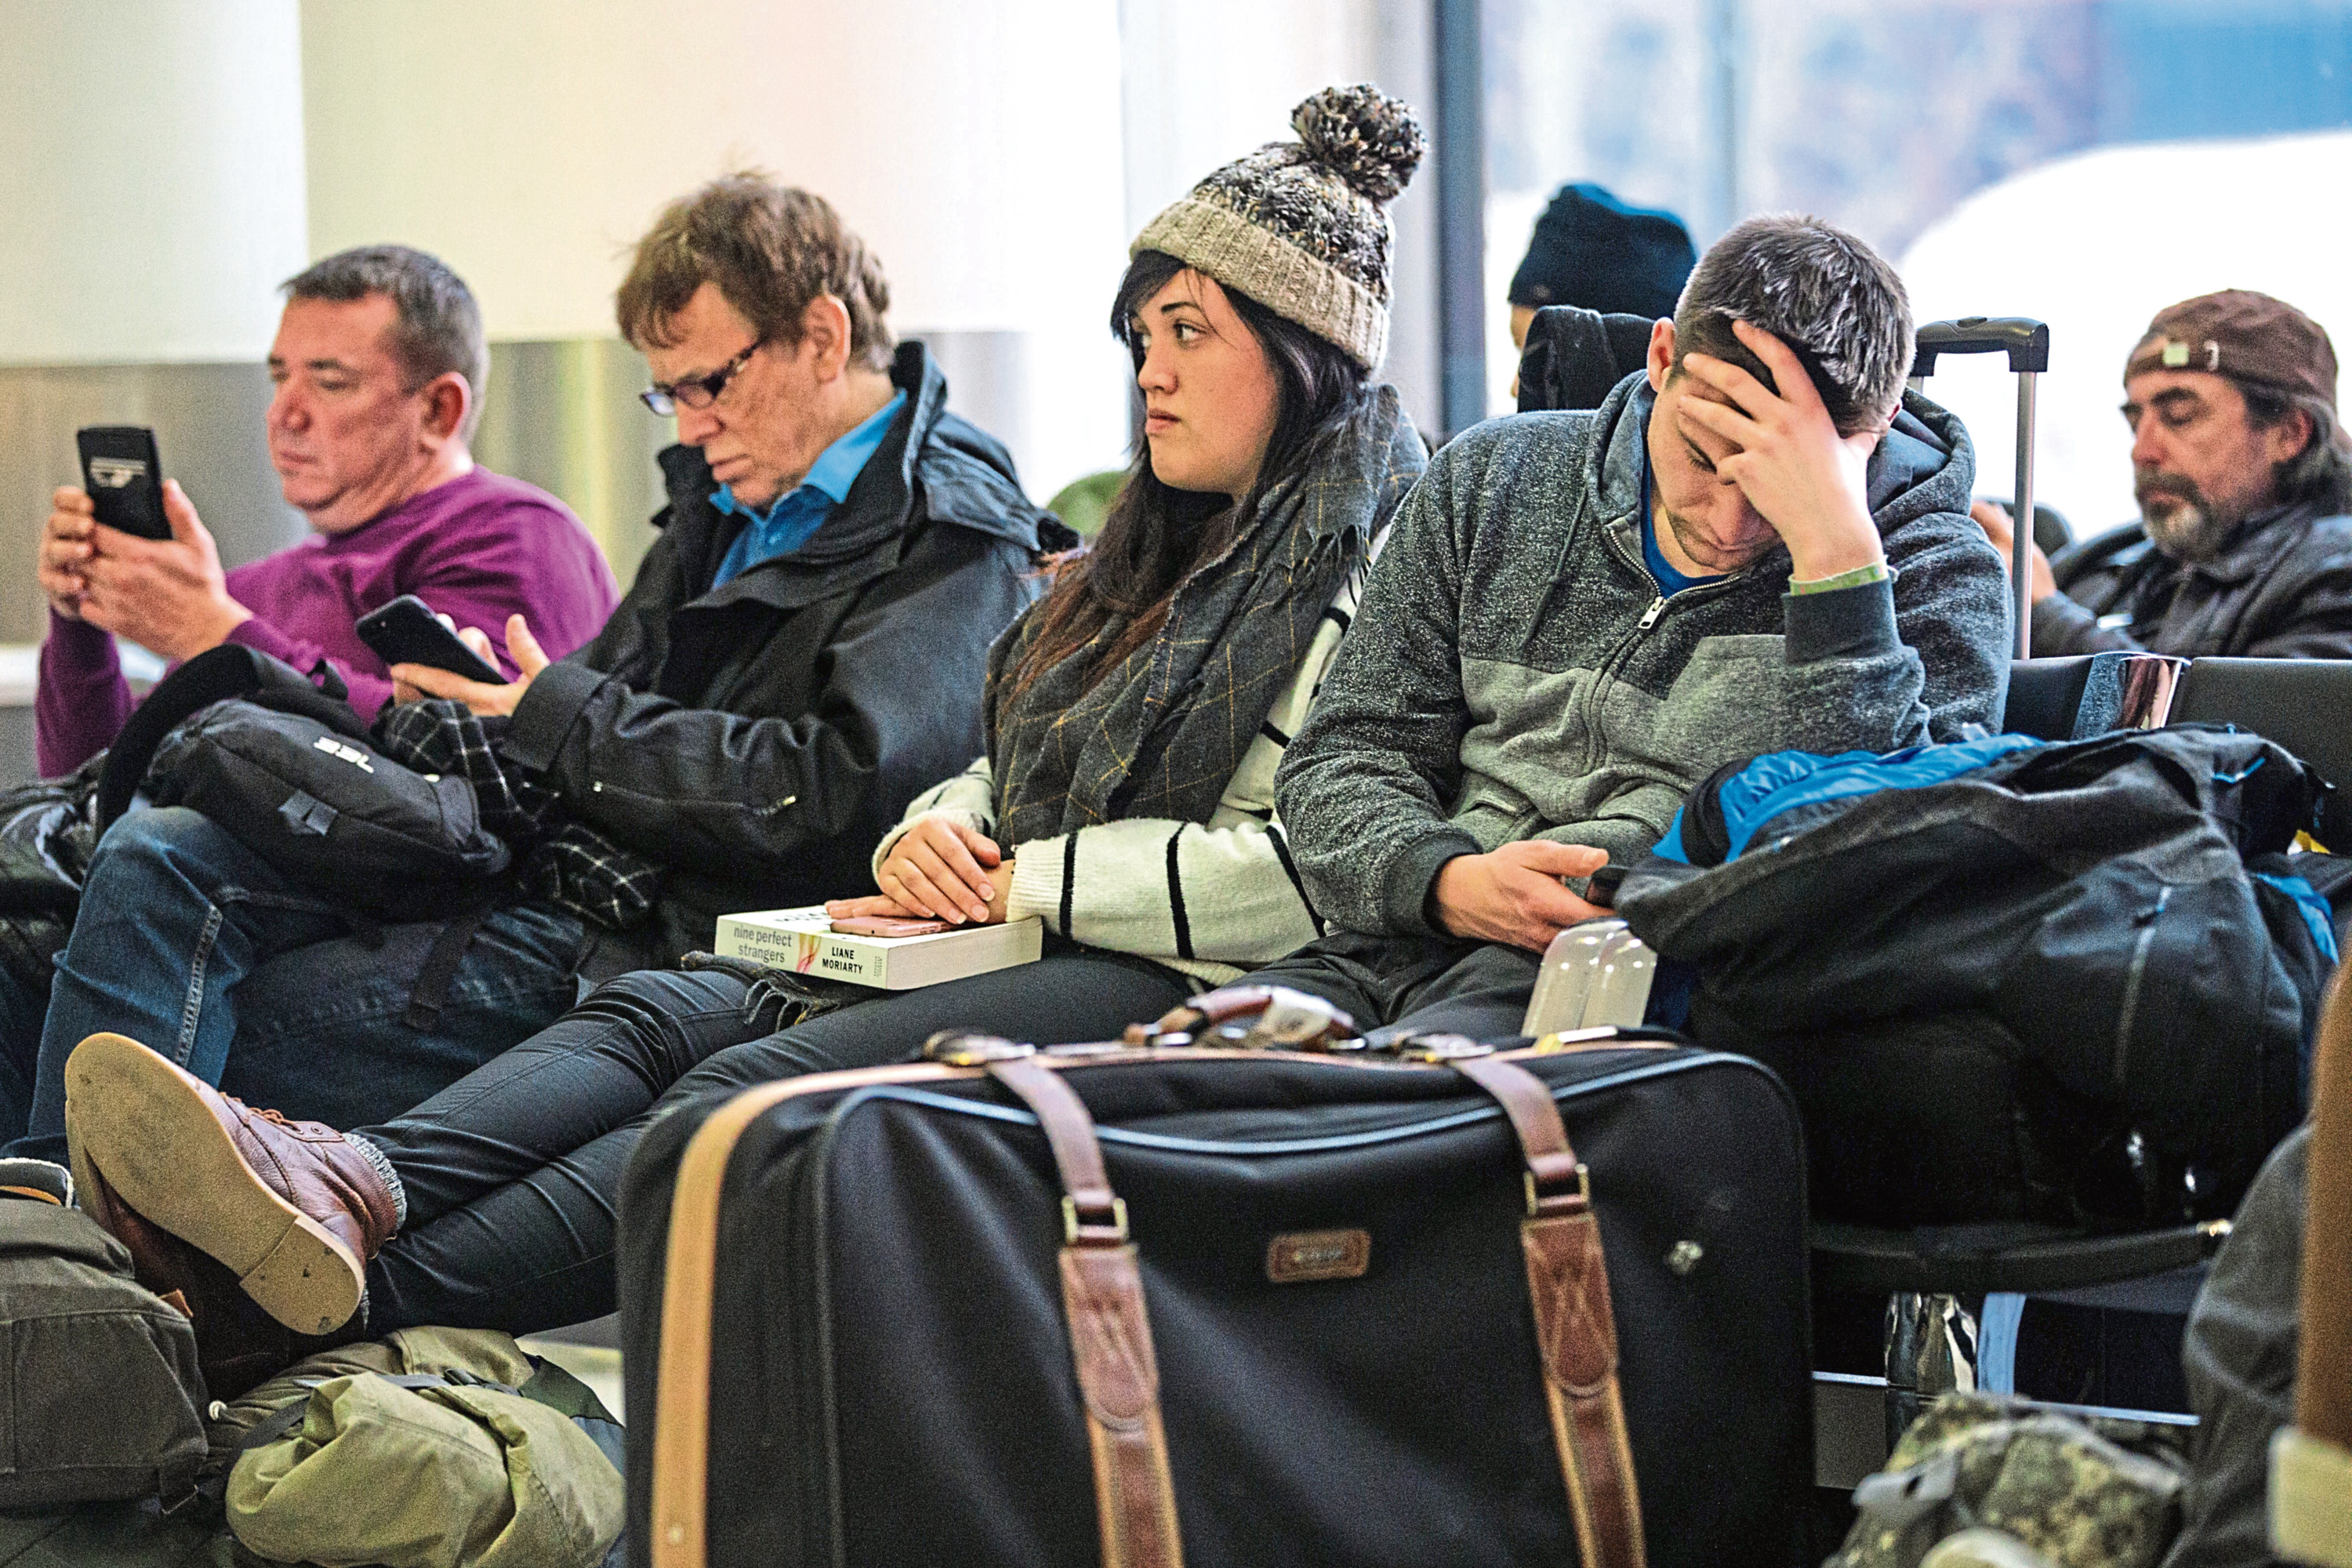 Passengers wait in the South Terminal building at London Gatwick Airport after flights resumed today on December 21, 2018 in London, England.